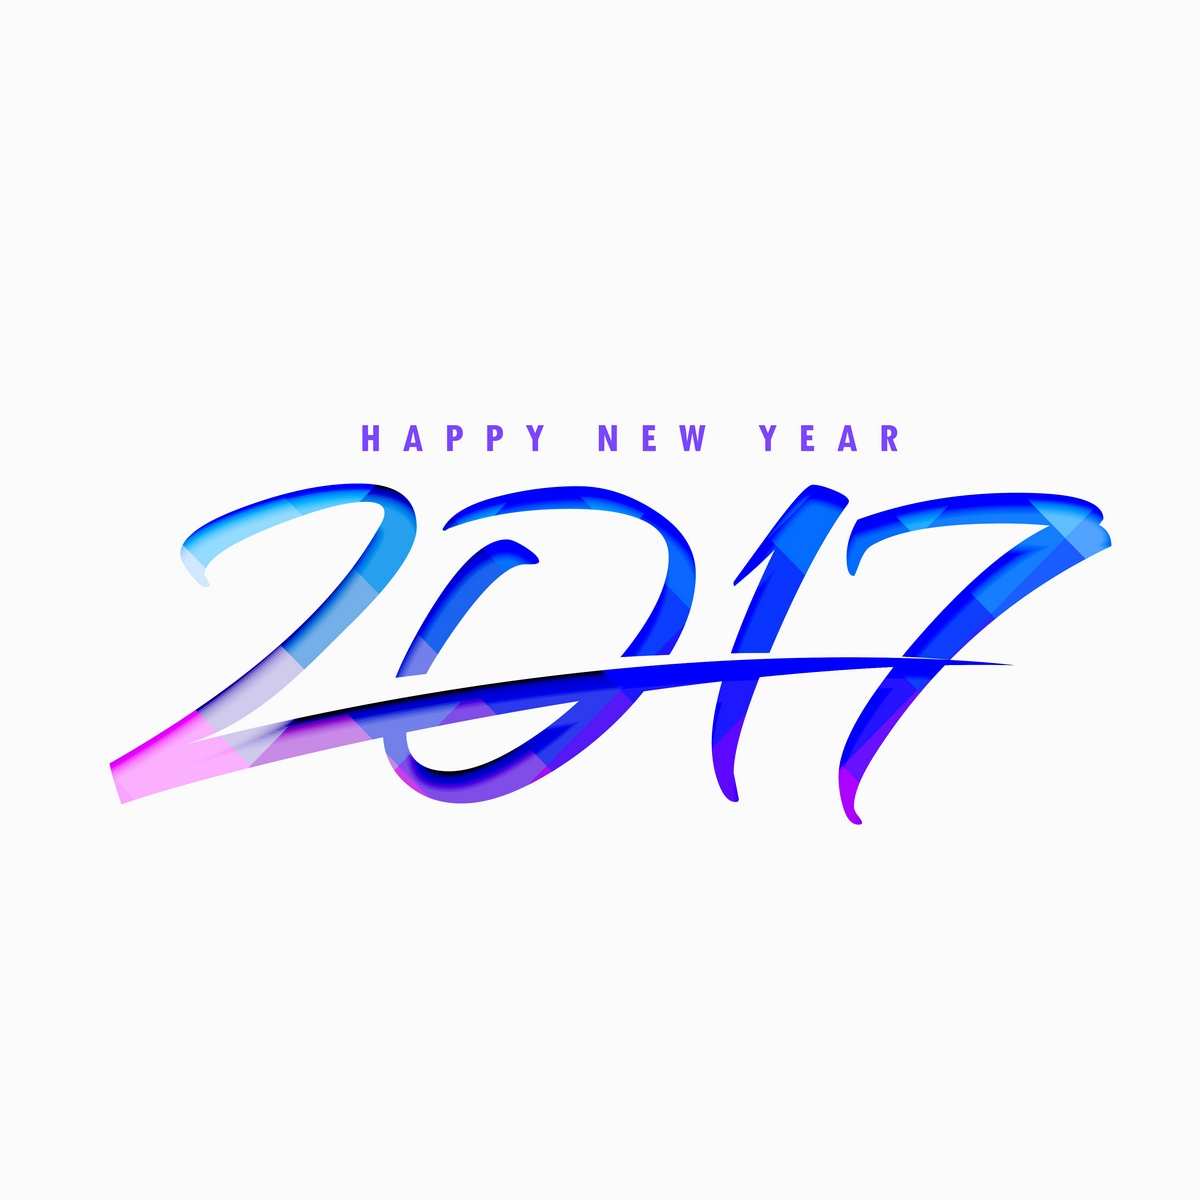 Happy New Year 2017 Wishes In Different Languages